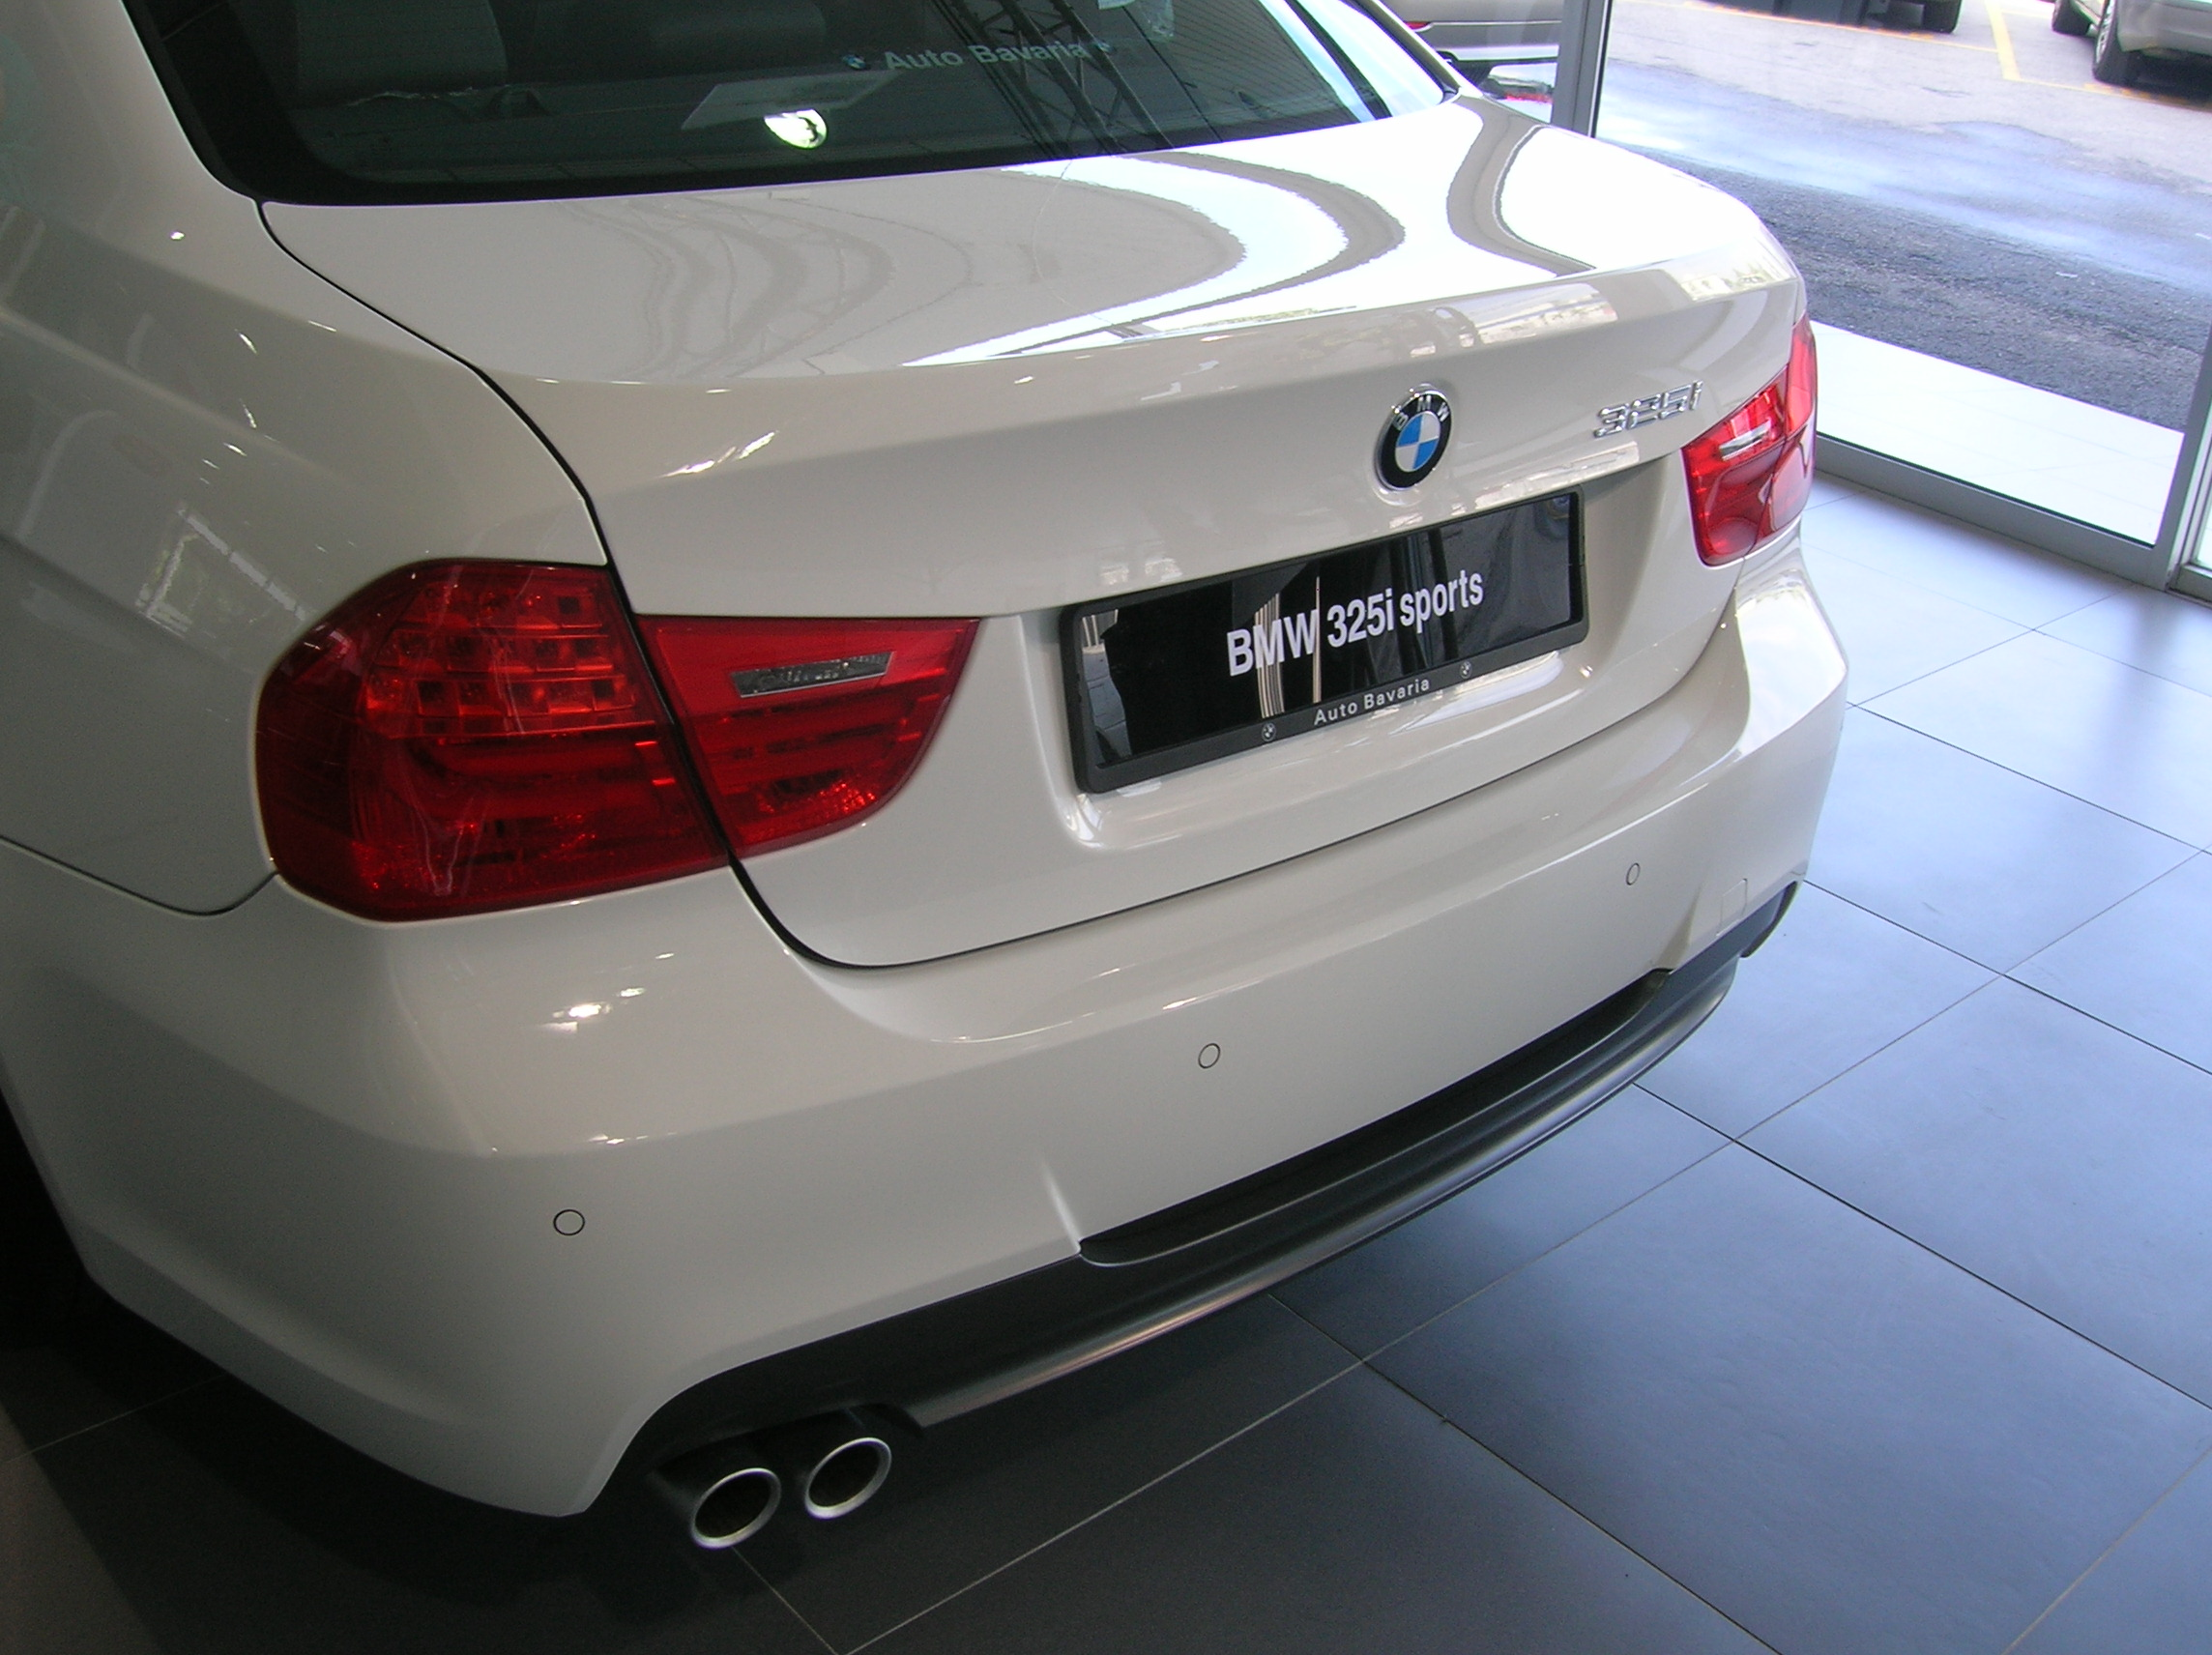 New look rear. The E90's original taillights received heavy criticism for being too bland. BMW responded, though I am not sure if the new ones really do look better.